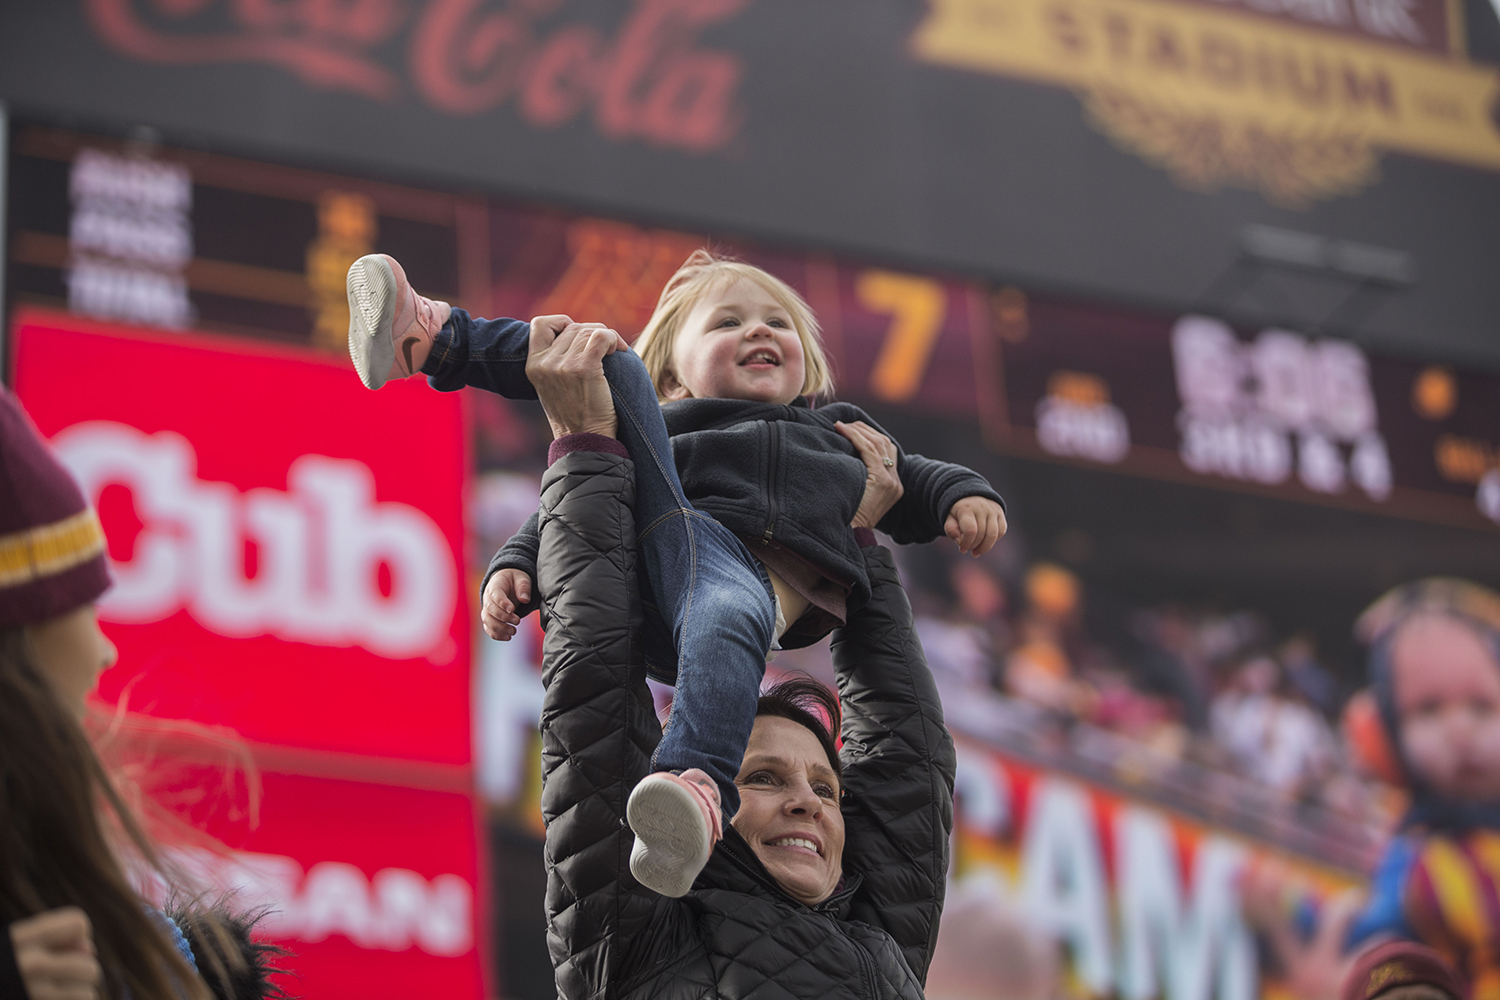 Peggy+Ryan+holds+up+2-year-old+Ryan+Morgan%2C+her+%22little+gopher%2C%22+during+the+Iowa%2FMinnesota+football+game+at+TCF+Bank+Stadium+in+Minneapolis+on+Saturday%2C+October+6%2C+2018.+The+Hawkeyes+defeated+the+Golden+Gophers%2C+48-31.+